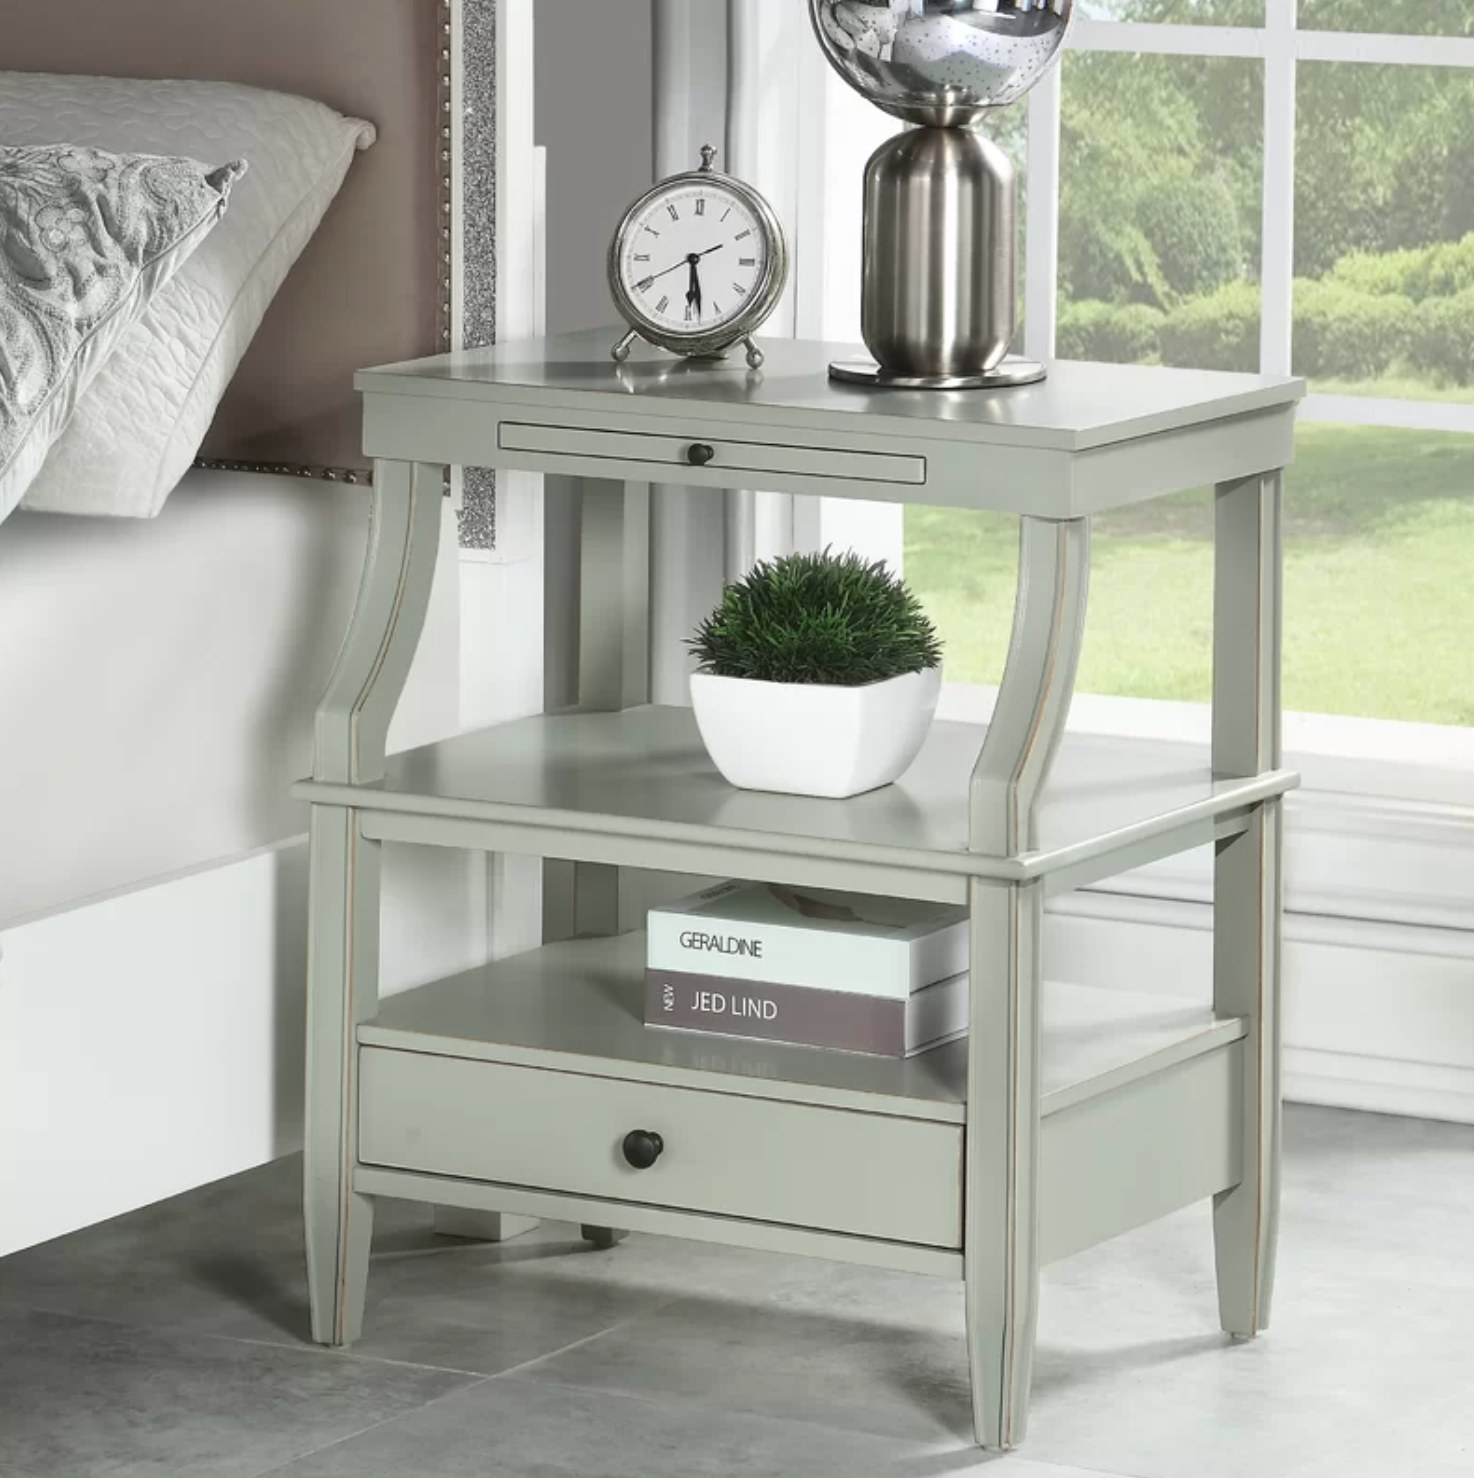 The nightstand in antique gray